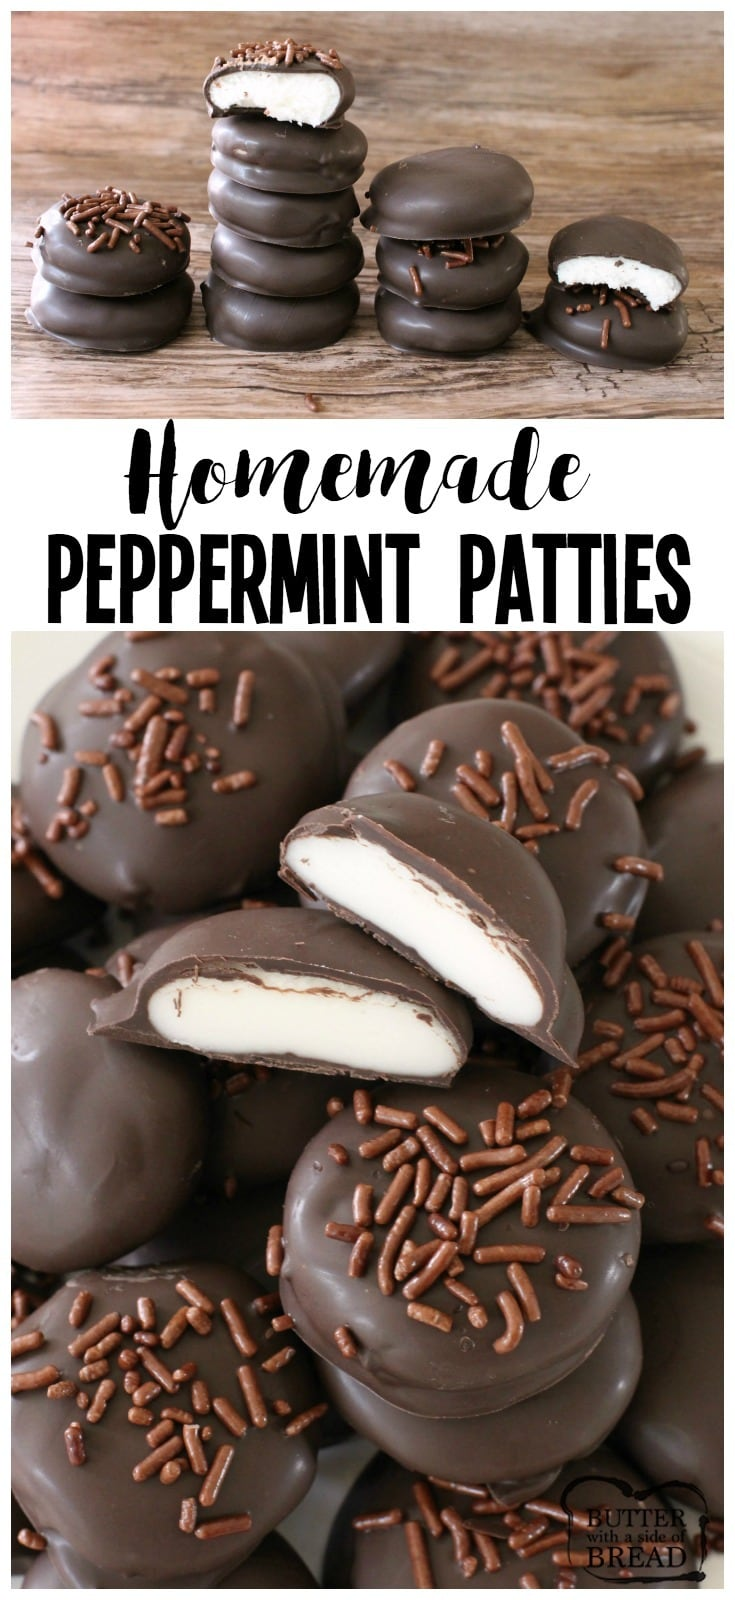 Easy Homemade Peppermint Patty recipe with just a handful of ingredients! Copycat York Peppermint Patties but BETTER. Simple soft, sweetened mint candy covered in chocolate for a delicious, easy peppermint patty candy.